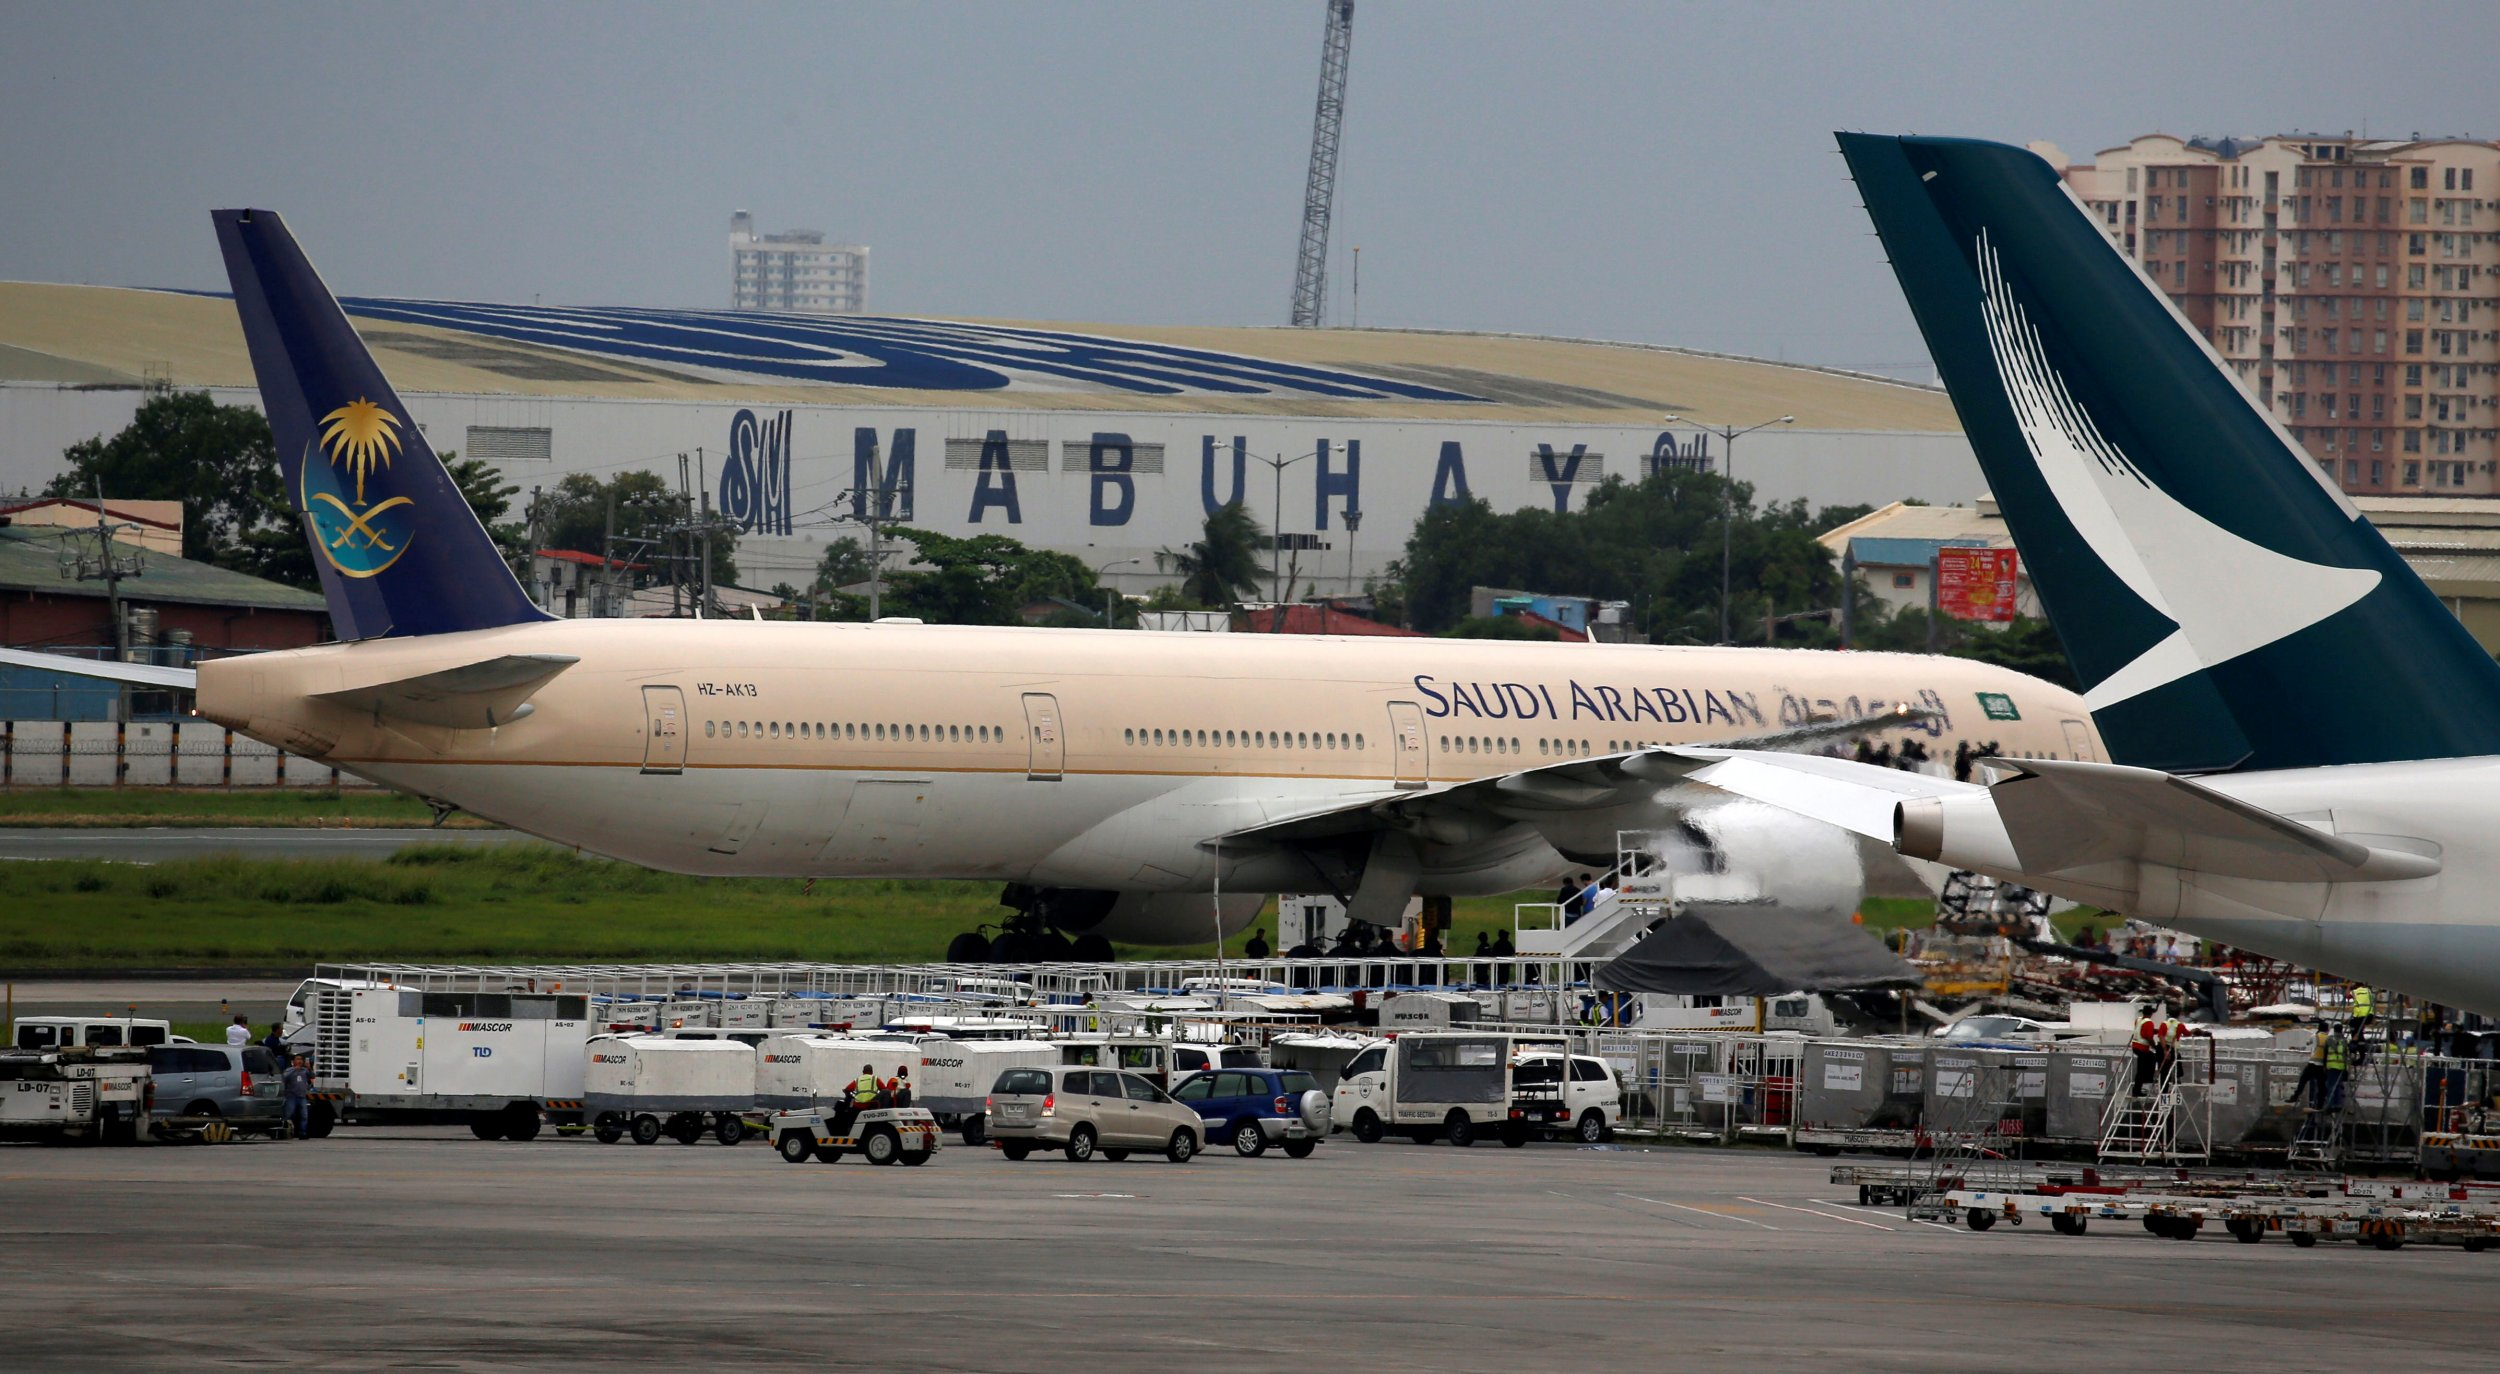 0426_saudi_arabian_airlines_01